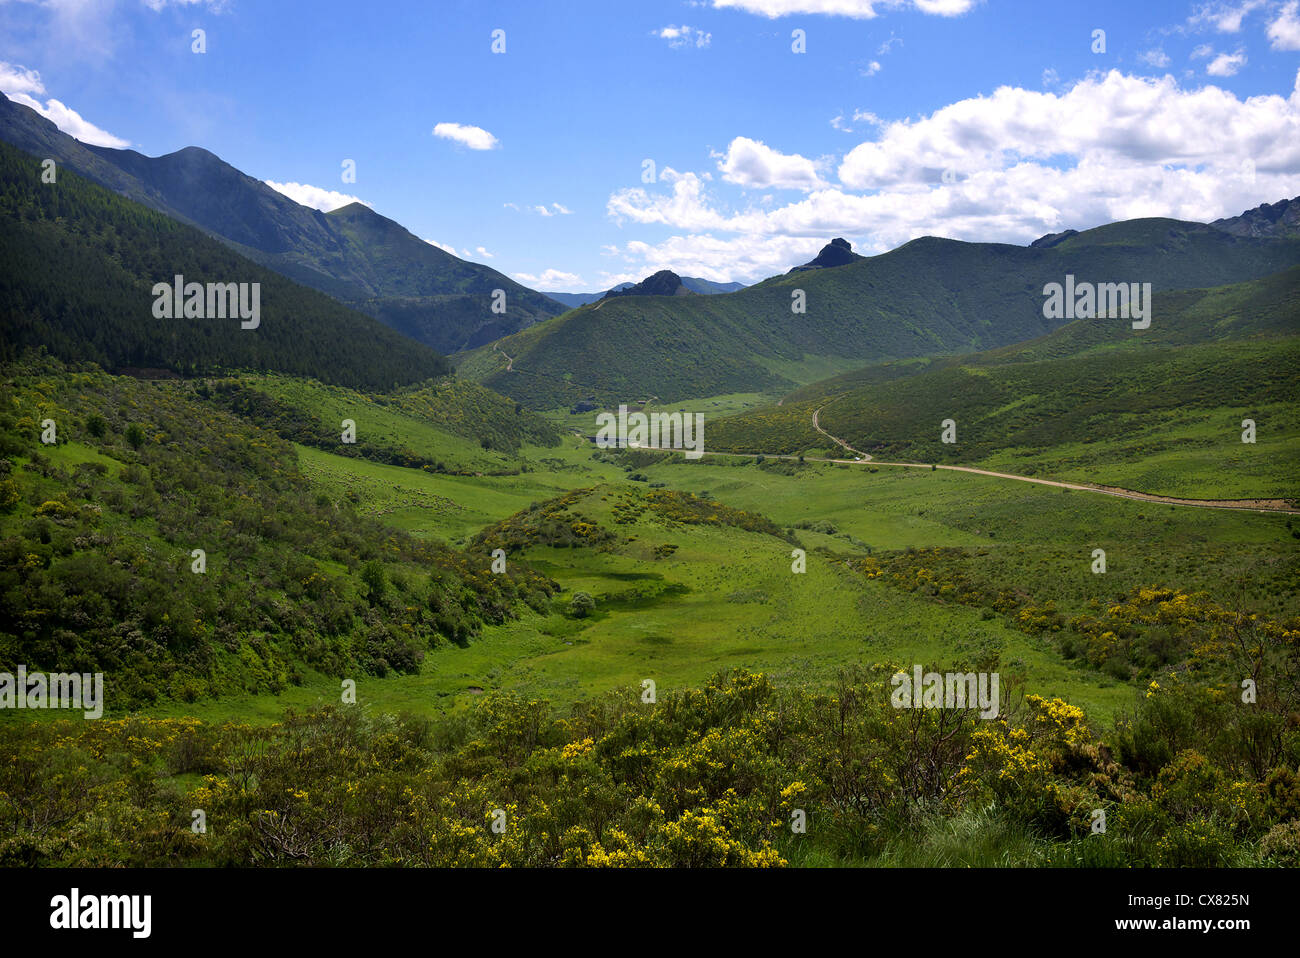 Countryside near the Puerto de San Gloria in the Picos de Europa, Spain. - Stock Image